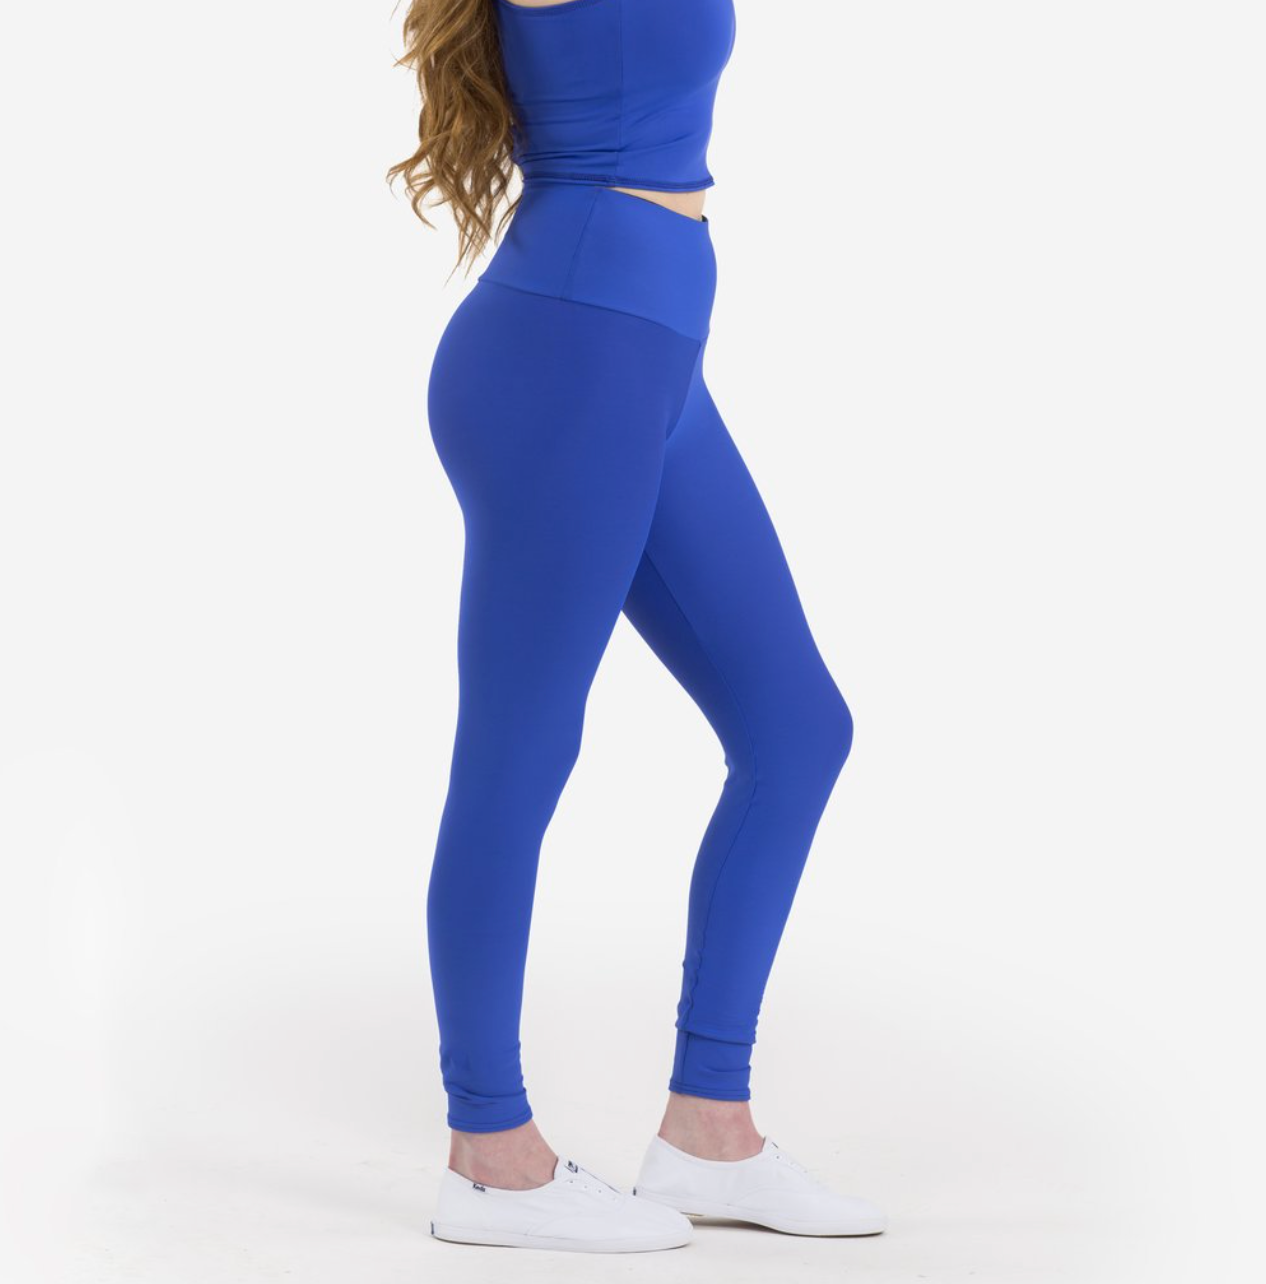 Sample Rack - Barely There Leggings - M